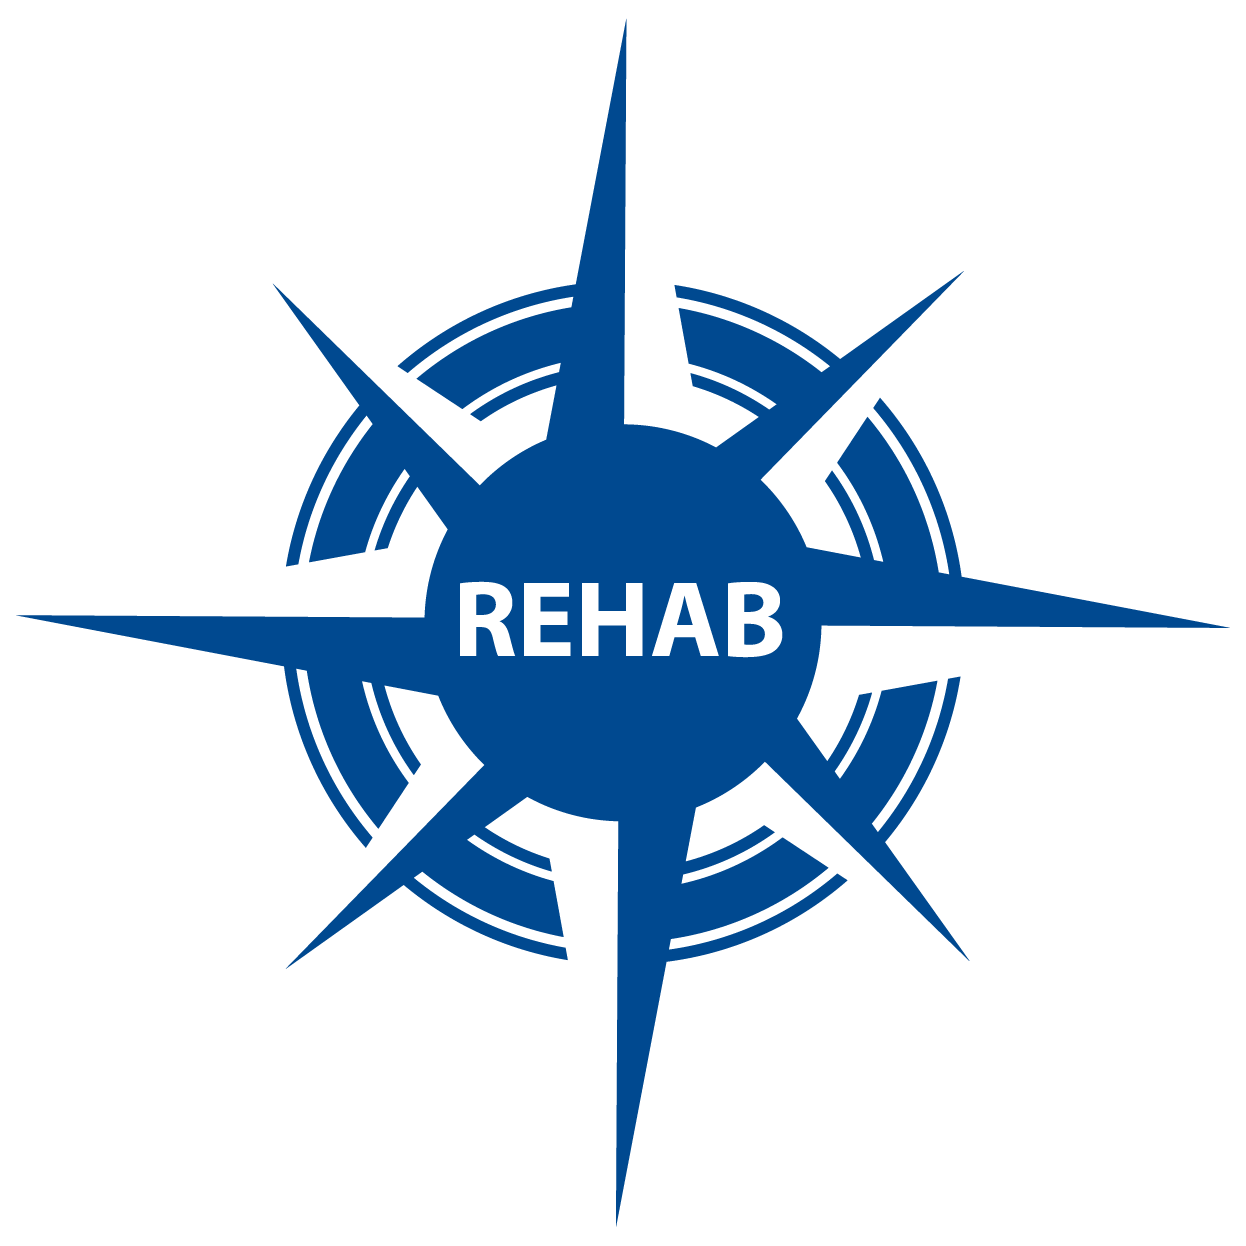 blue compass with REHAB in center